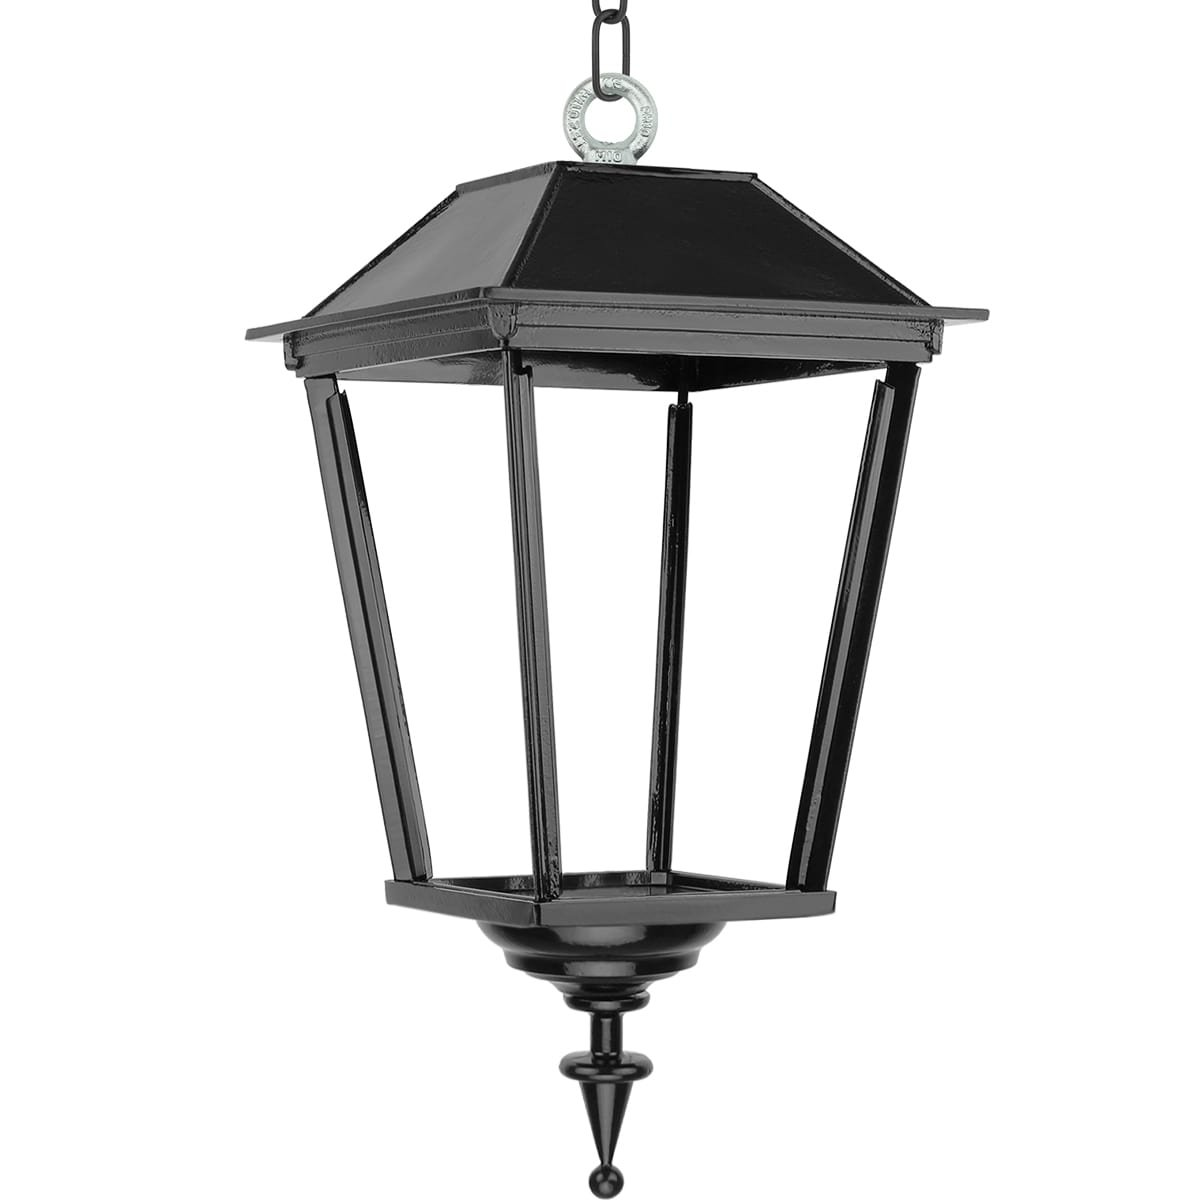 Outdoor Lighting Classic Rural Hanging lamp Appingedam on chain XL - 60 cm